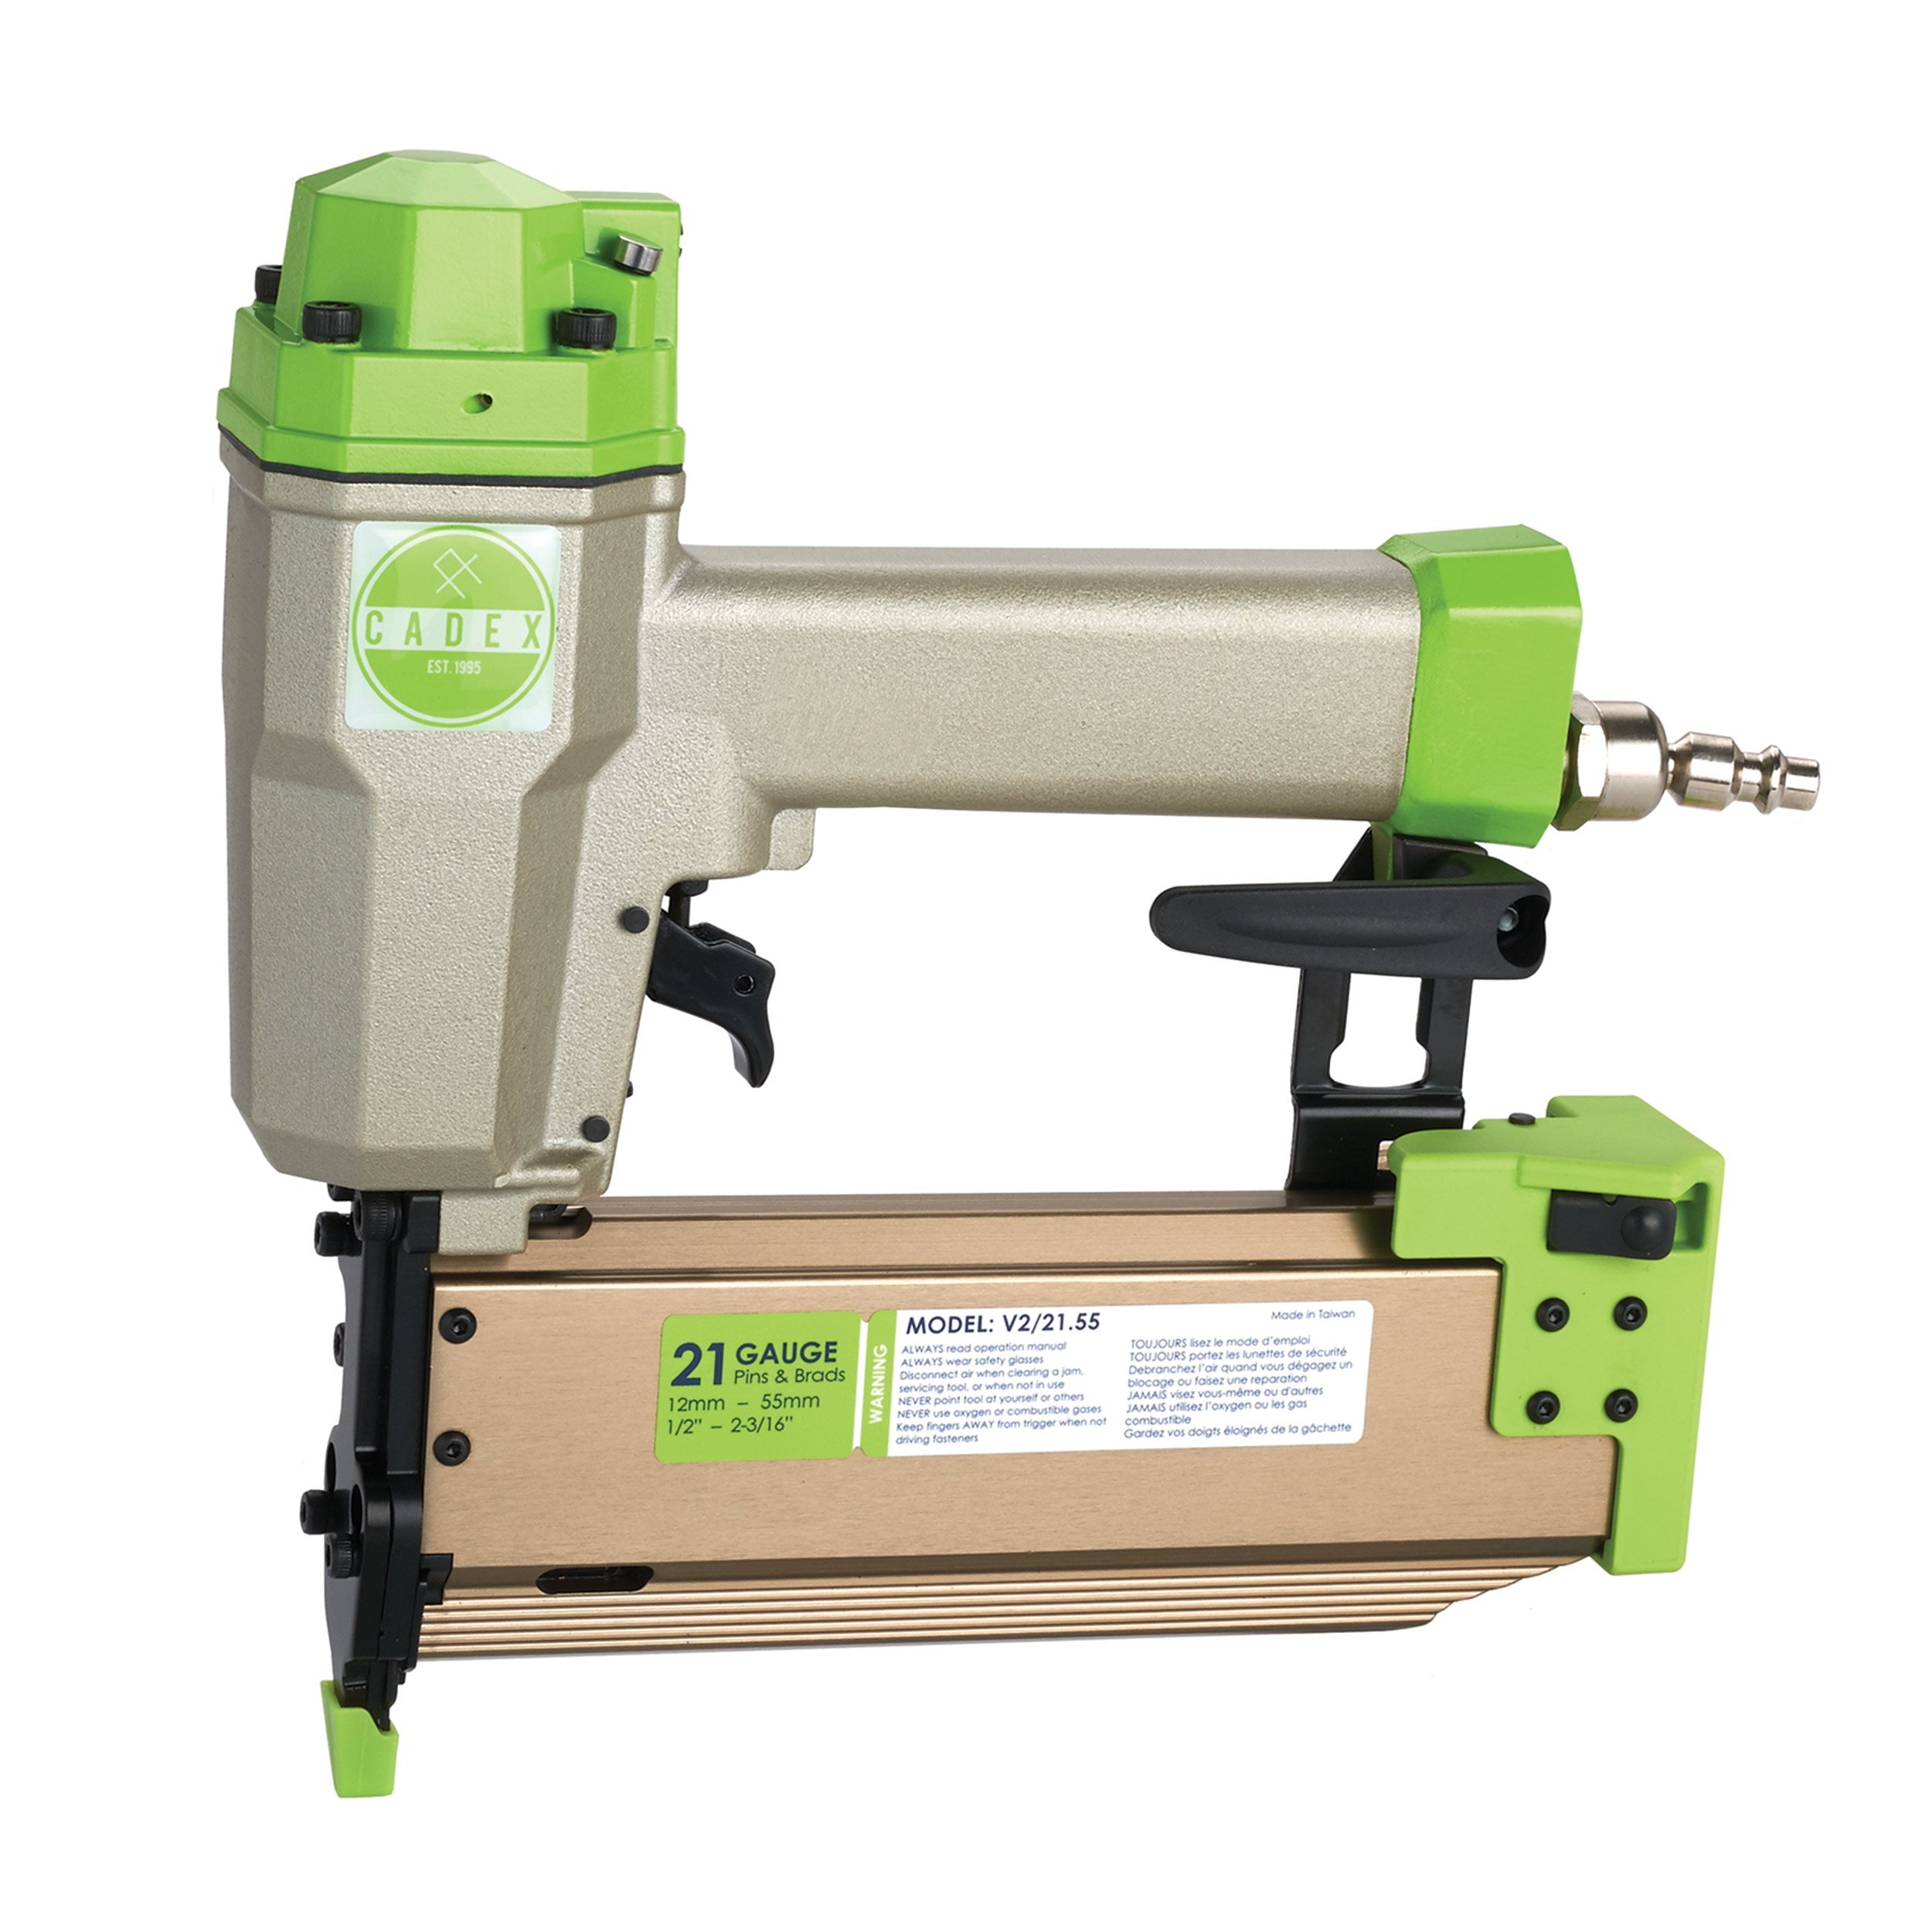 "Cadex 21 Gauge, 2-3 16"" Combination Pinner Brad Nailer with Systainer Case by Direct Sales LTD"